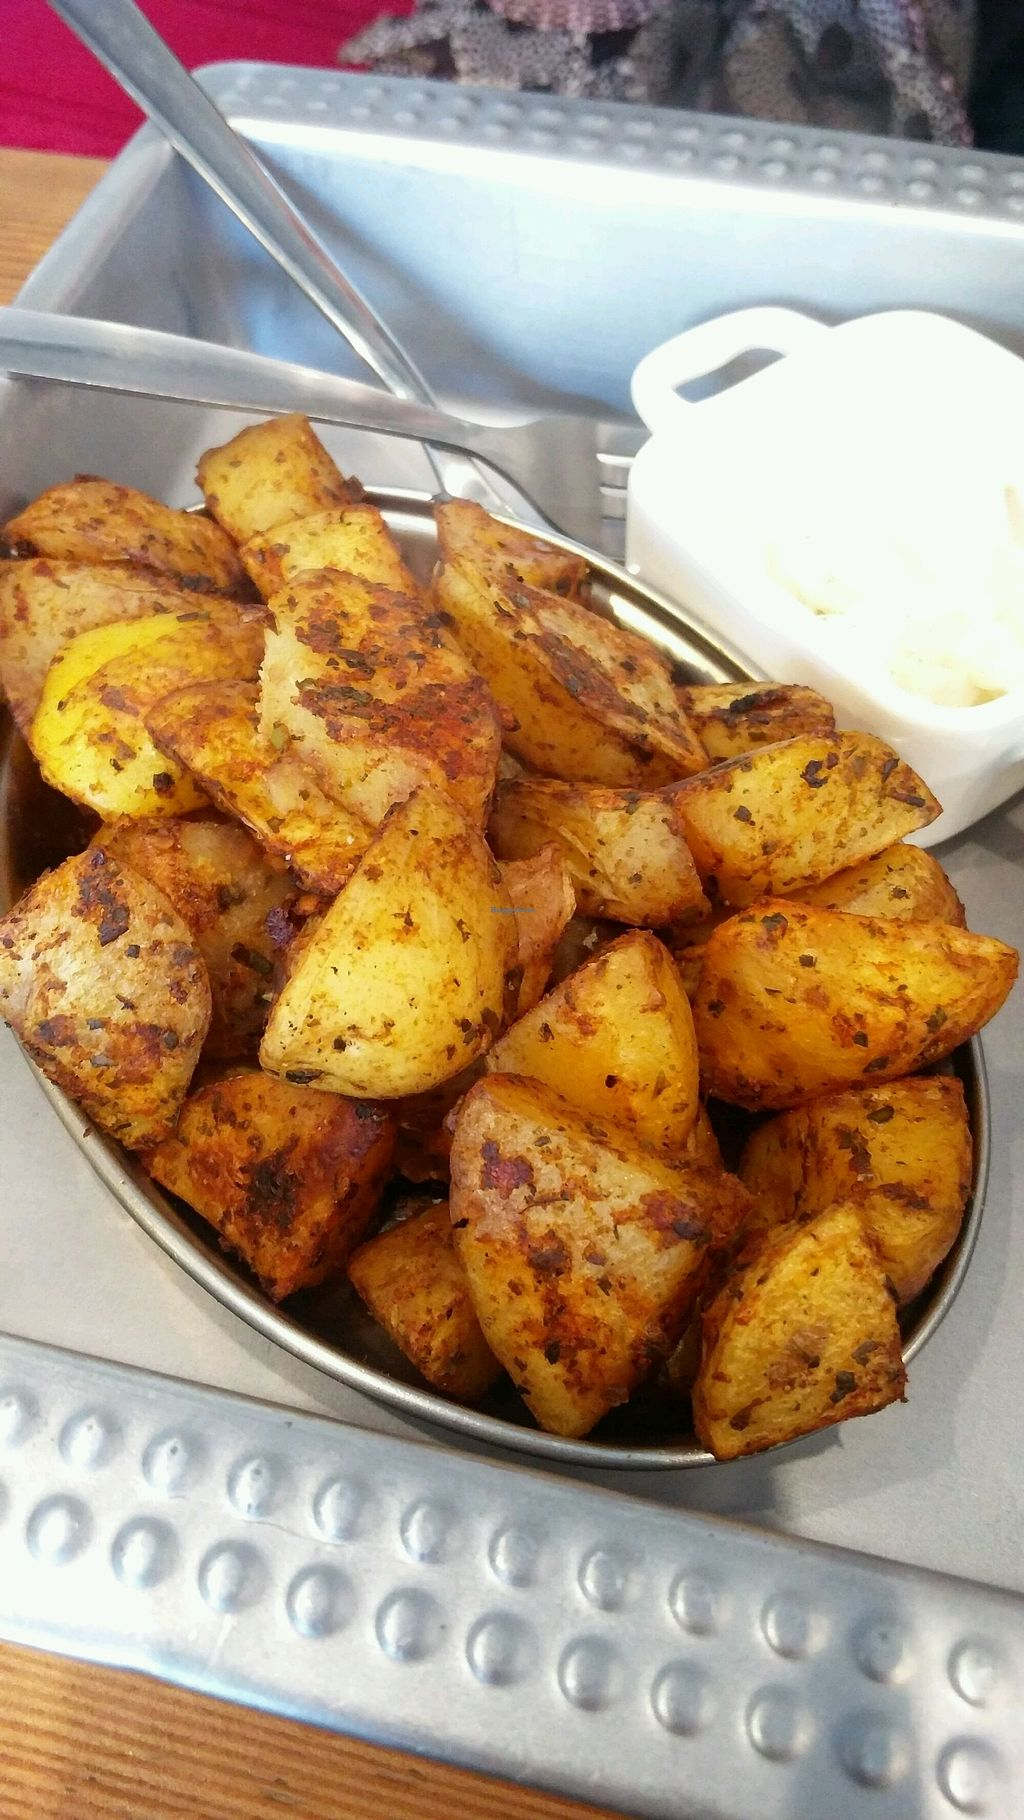 """Photo of Chwast Food  by <a href=""""/members/profile/Harp"""">Harp</a> <br/>potatoes <br/> November 4, 2017  - <a href='/contact/abuse/image/52782/321695'>Report</a>"""